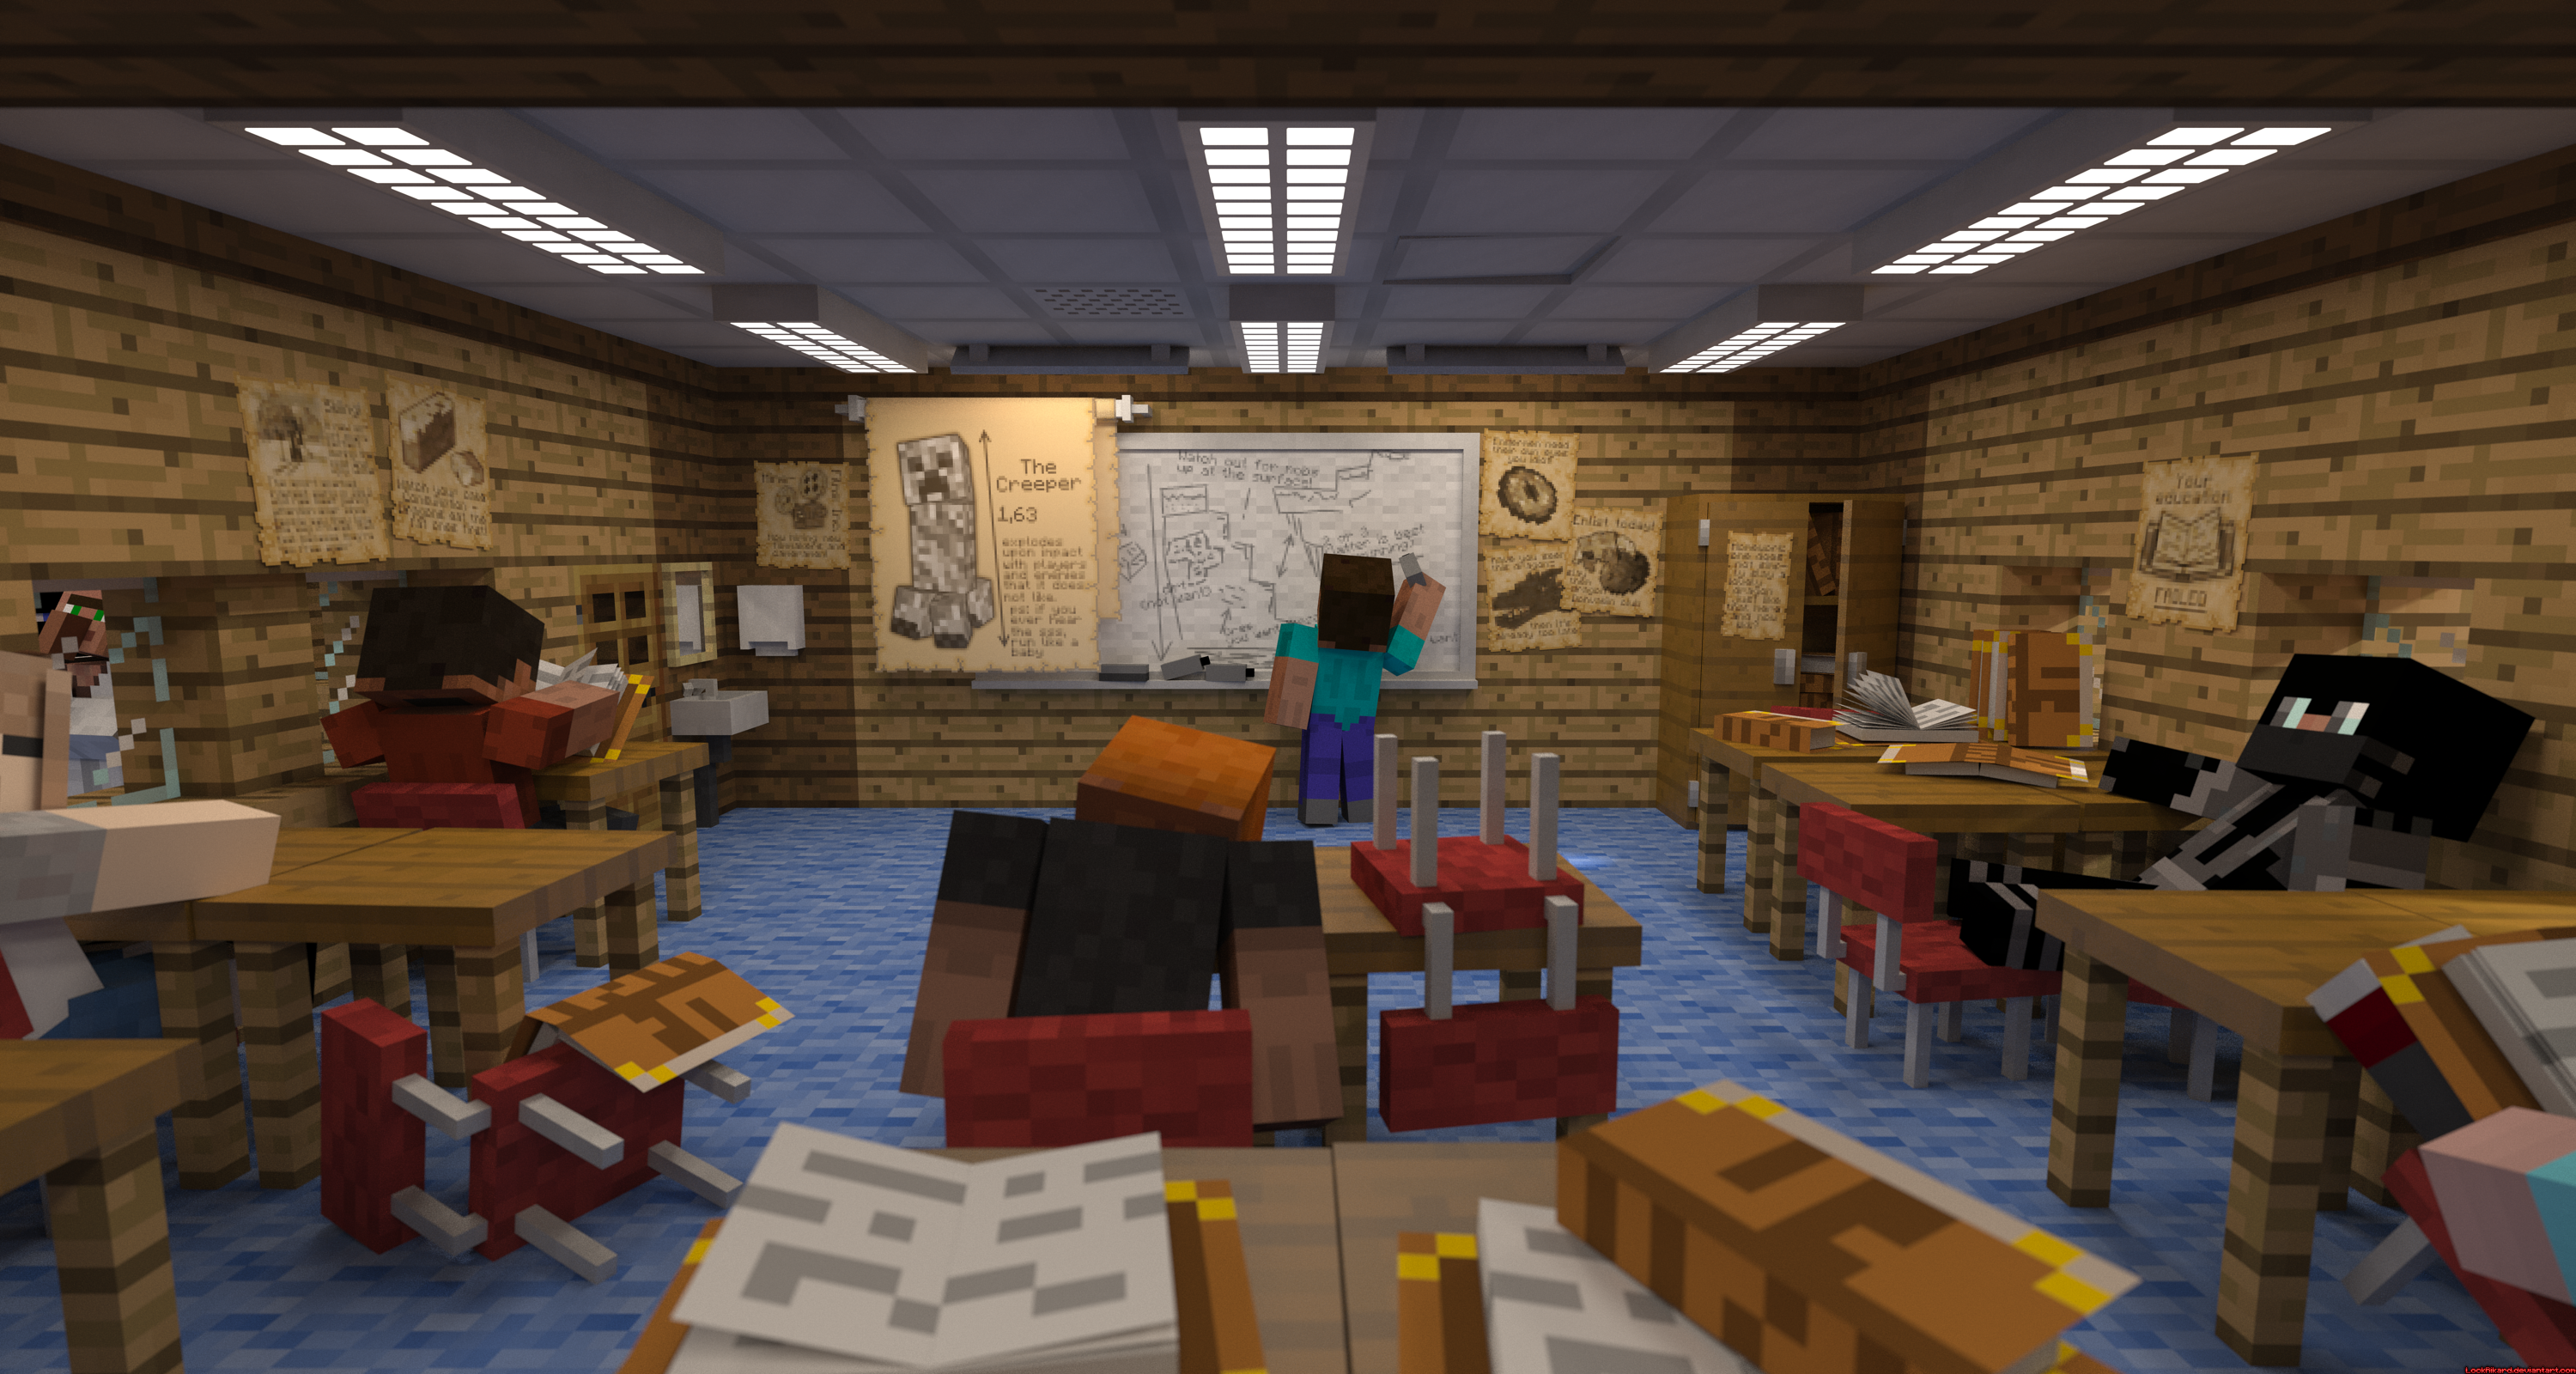 Microsoft pushes Minecraft into the classroom with new website | Ars Technica